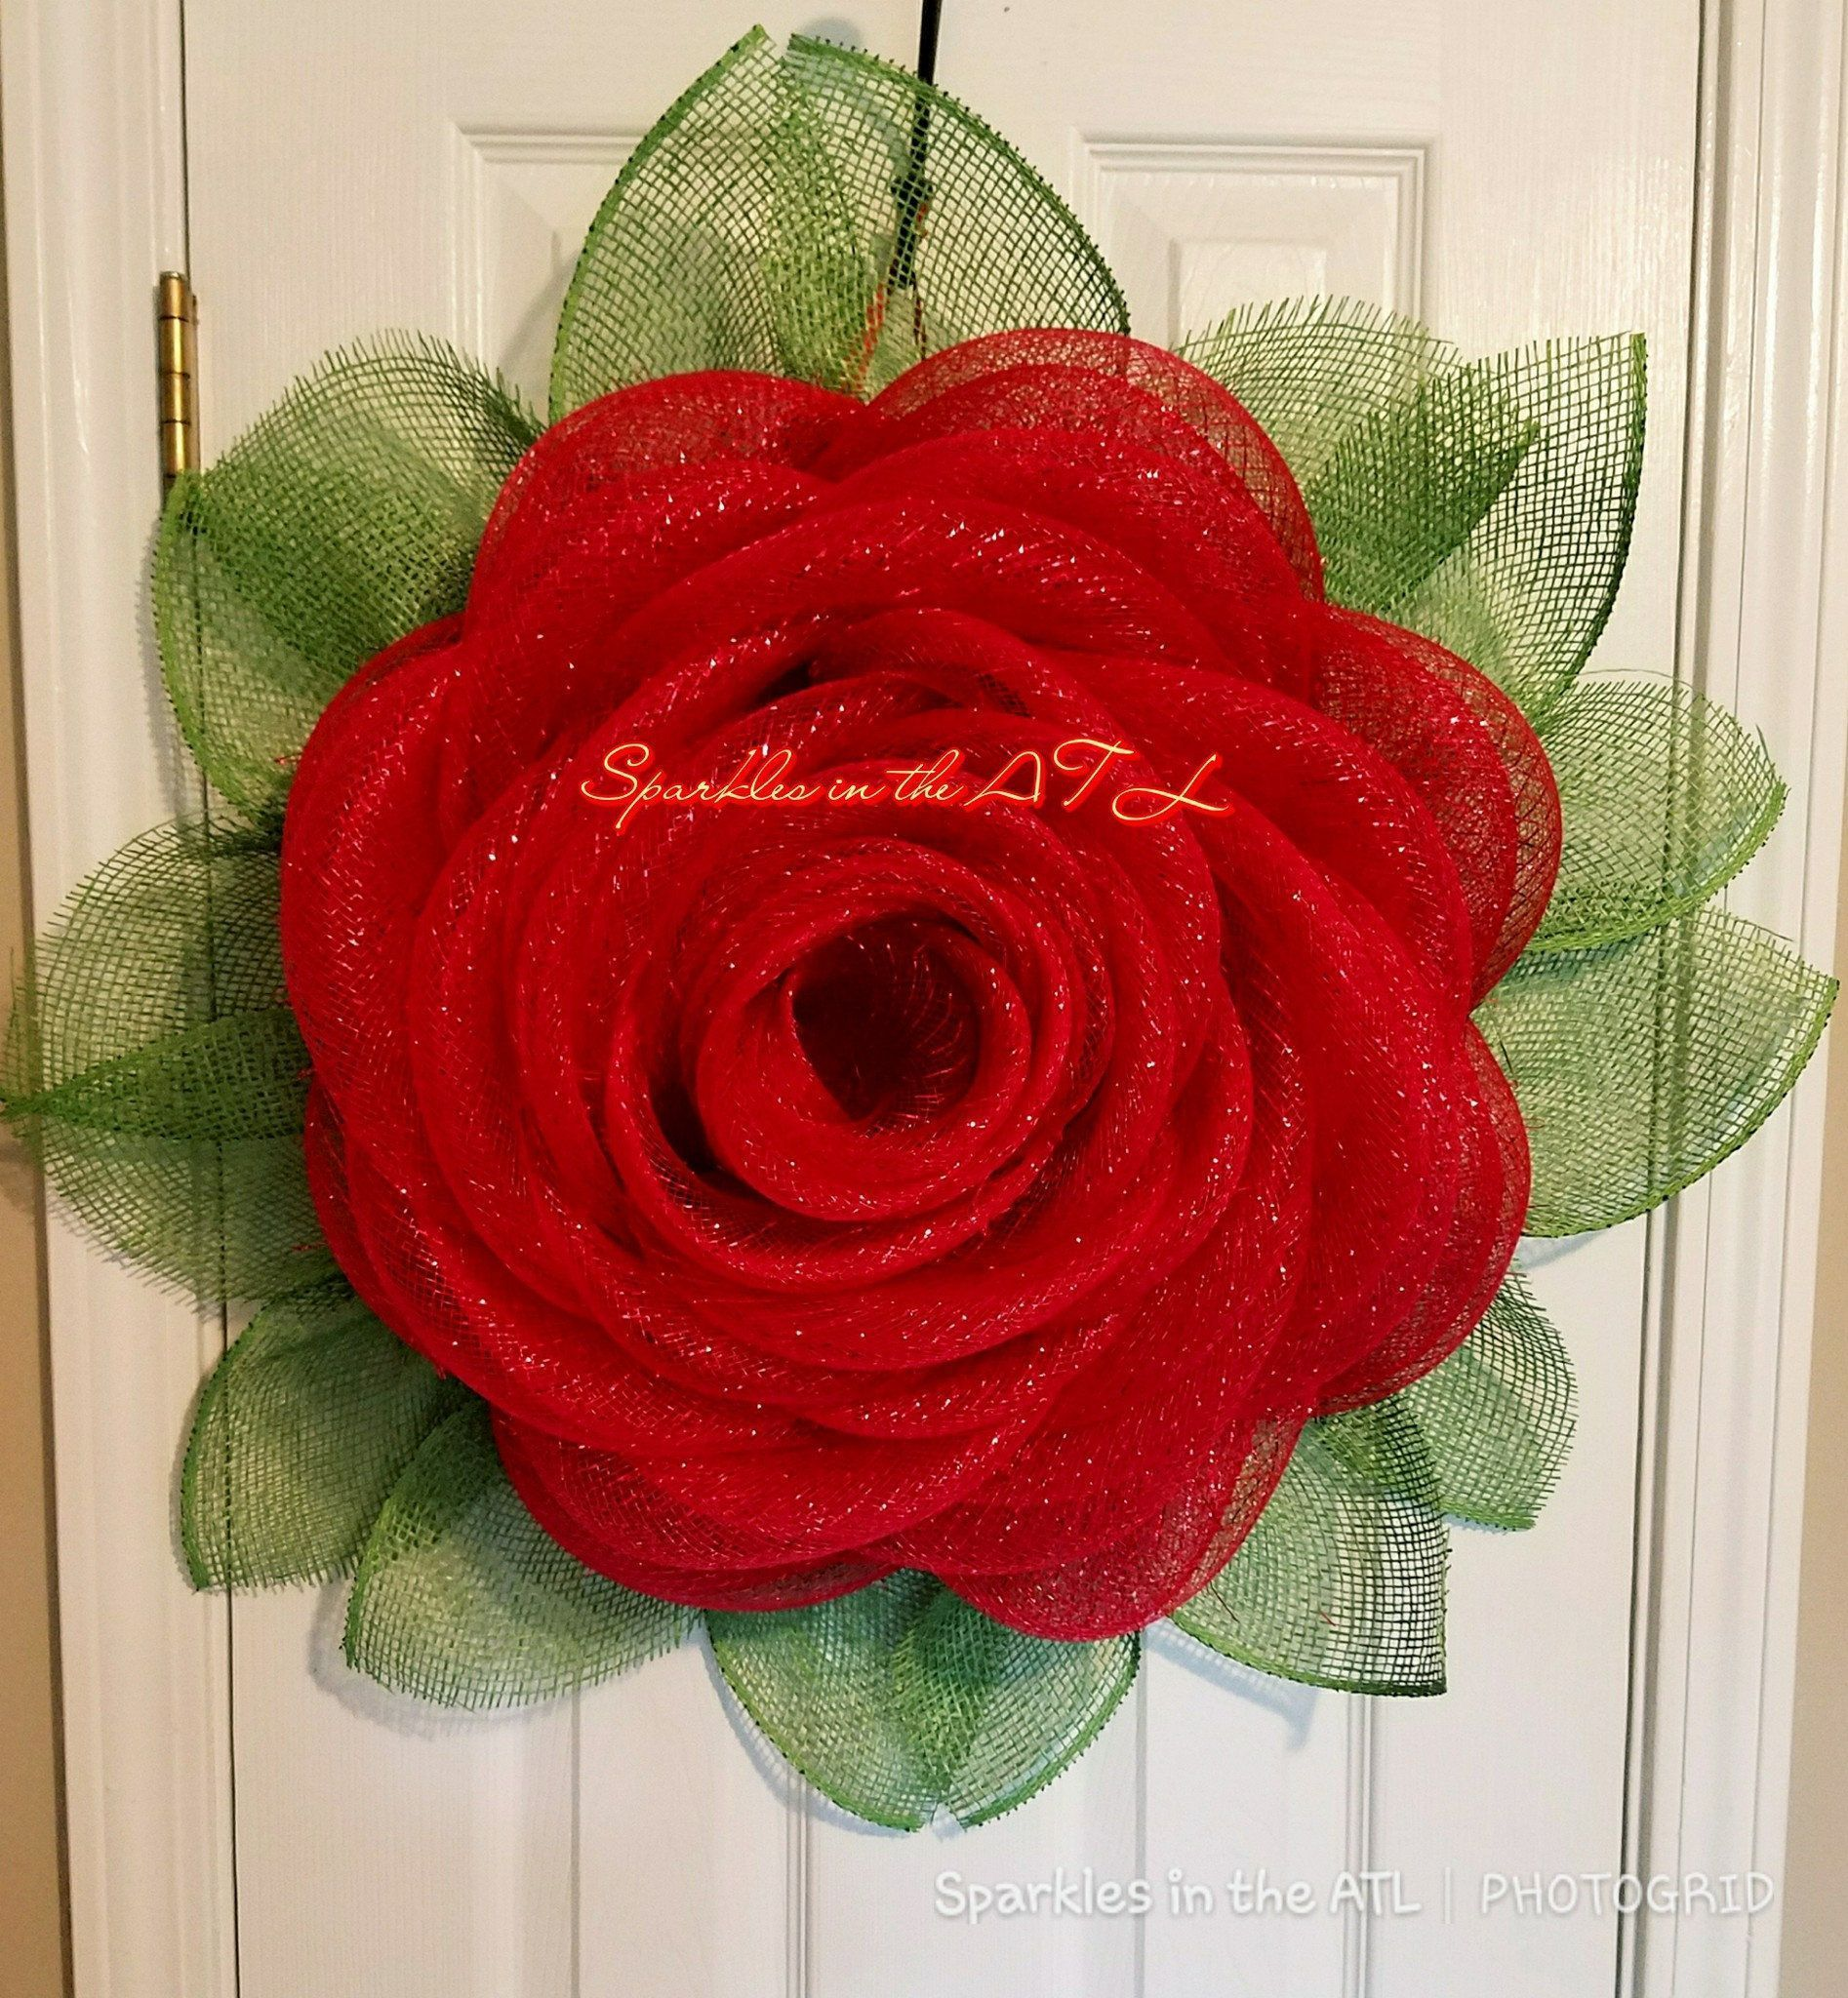 Rose Wreath Mother's Day Wreath Custom Rose Wreath Spring Wreath Flower Wreath Mother's Day Wedding Wreath Double Door Wreath Housewarming #doubledoorwreaths Rose Wreath Mother's Day Wreath Custom Rose Wreath Spring Wreath Flower Wreath Mother's Day Wedding Wreath Double Door Wreath Housewarming by SparklesInTheATL on Etsy #doubledoorwreaths Rose Wreath Mother's Day Wreath Custom Rose Wreath Spring Wreath Flower Wreath Mother's Day Wedding Wreath Double Door Wreath Housewarming #doubledoorwreath #doubledoorwreaths